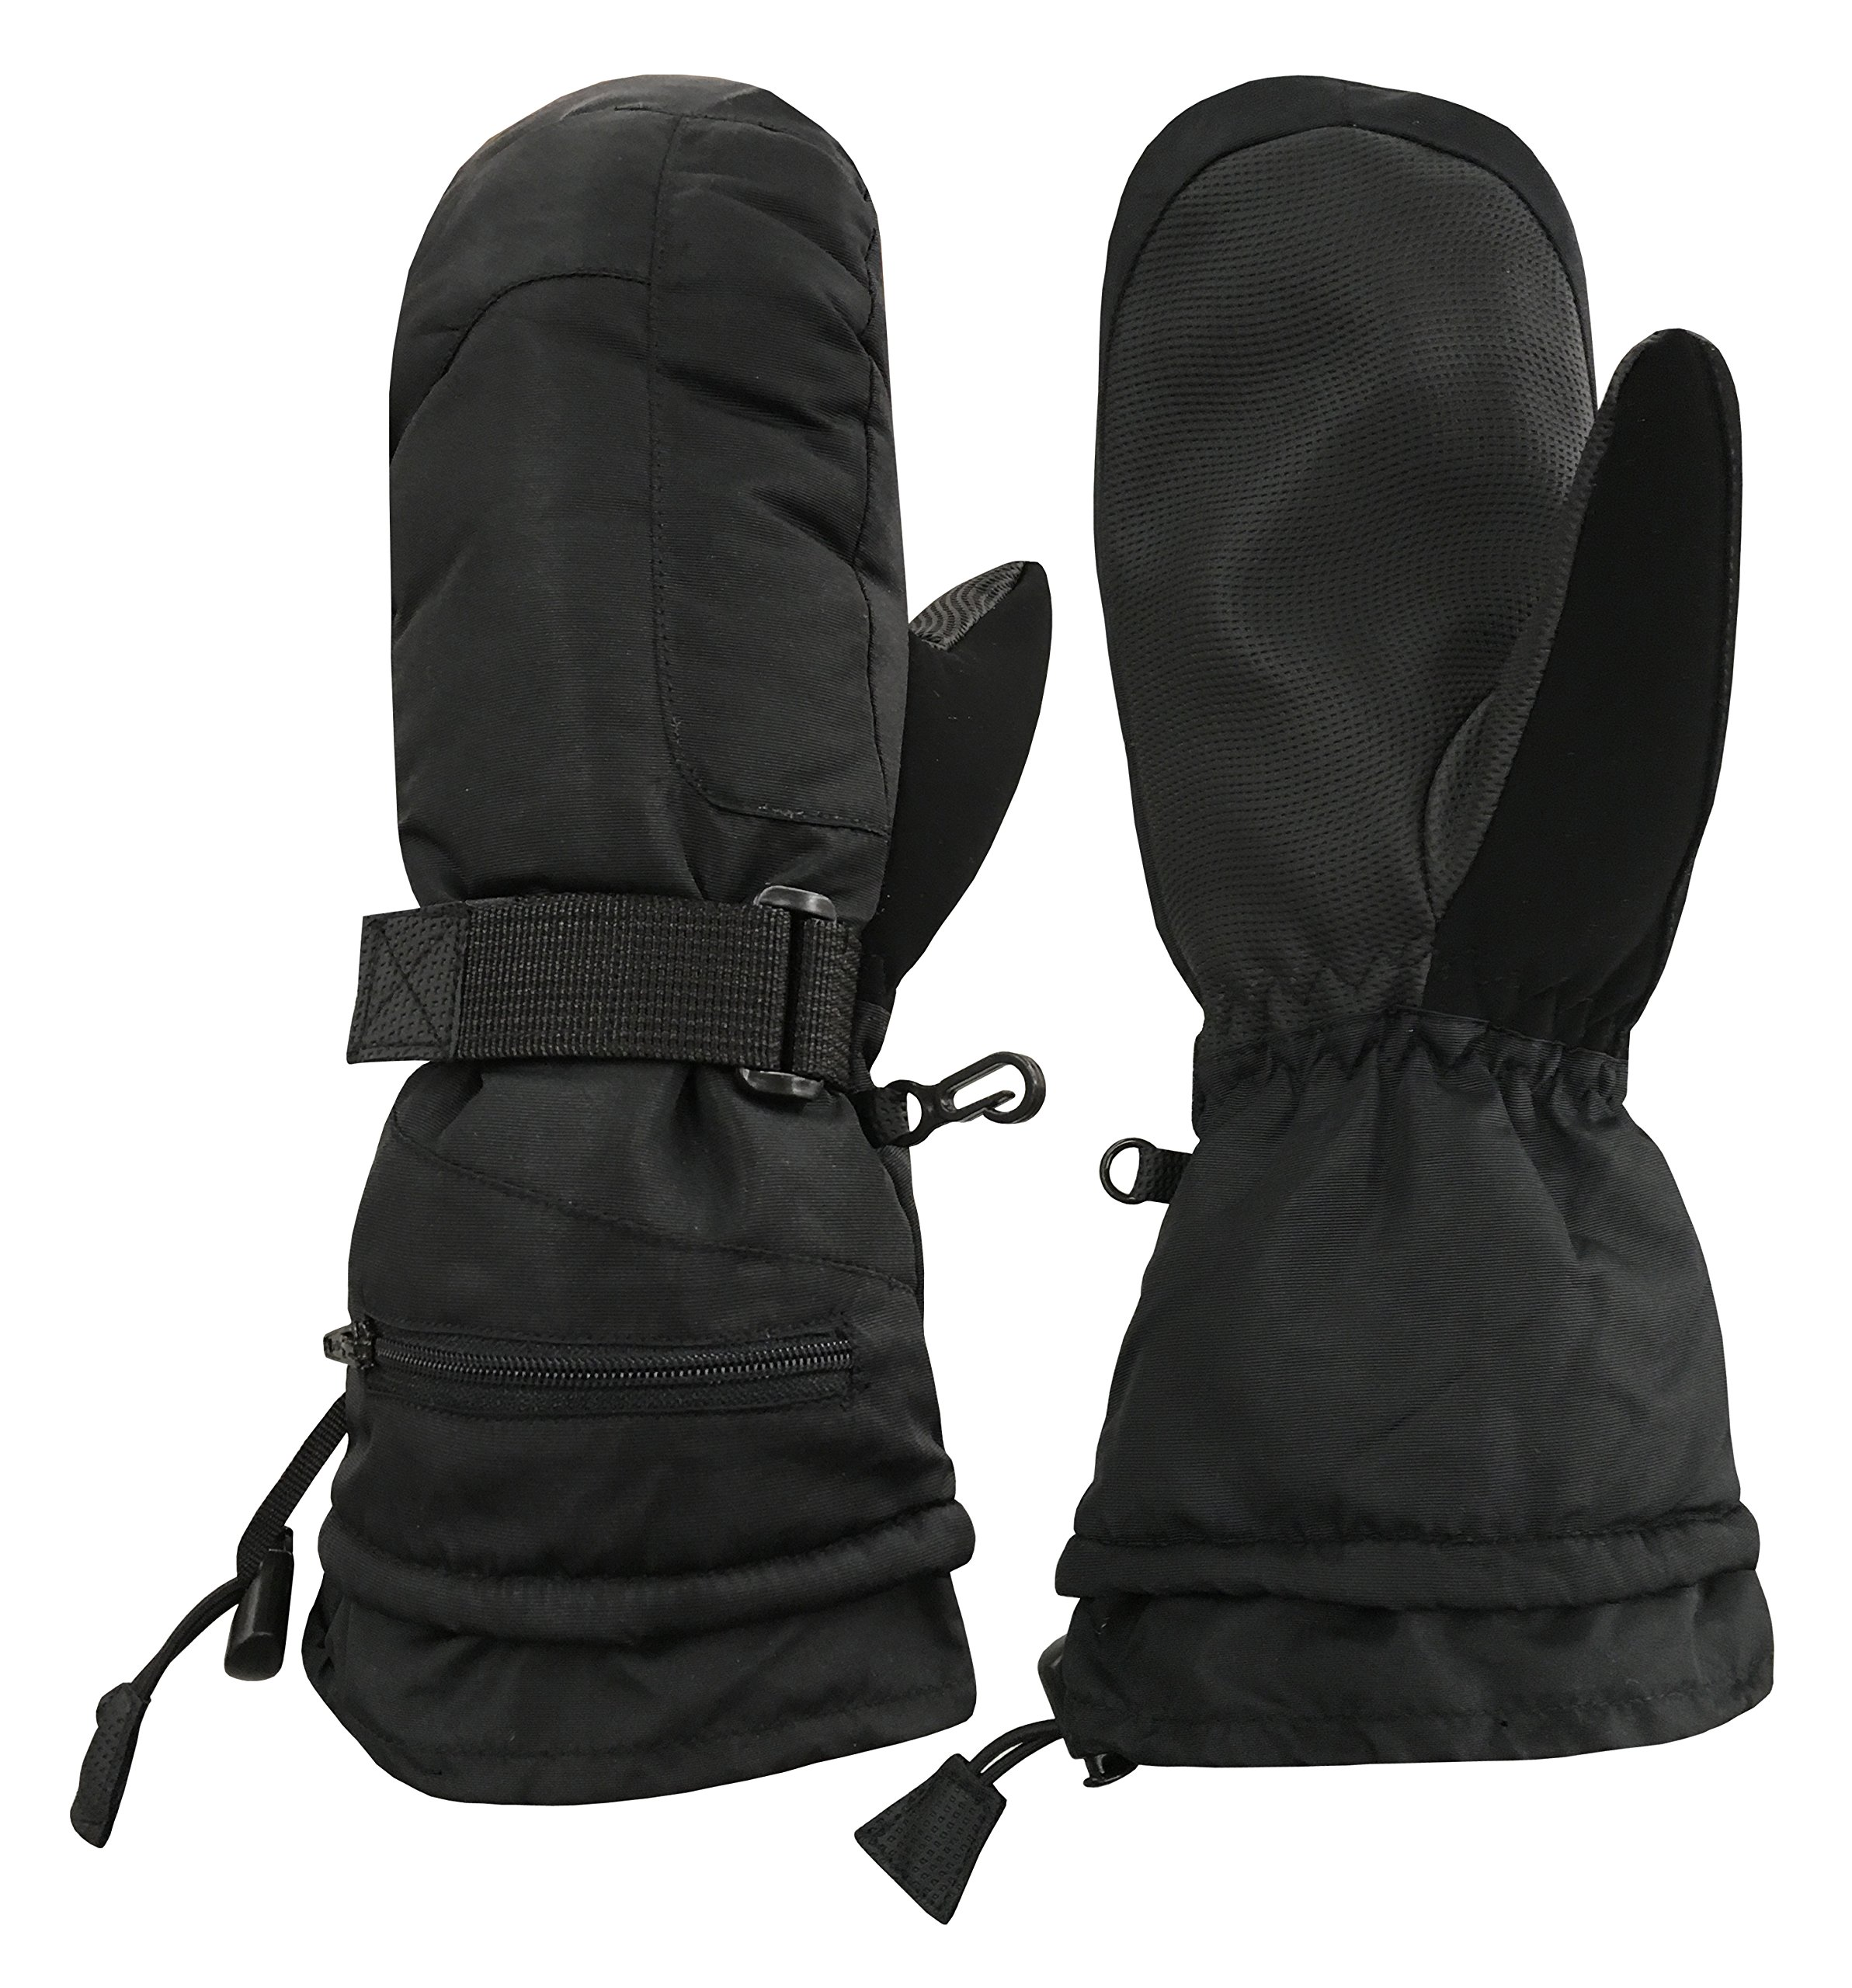 N'Ice Caps Unisex Adult High Performance Breathable Ski Mitten (Men's Large/X-Large, Black solid)